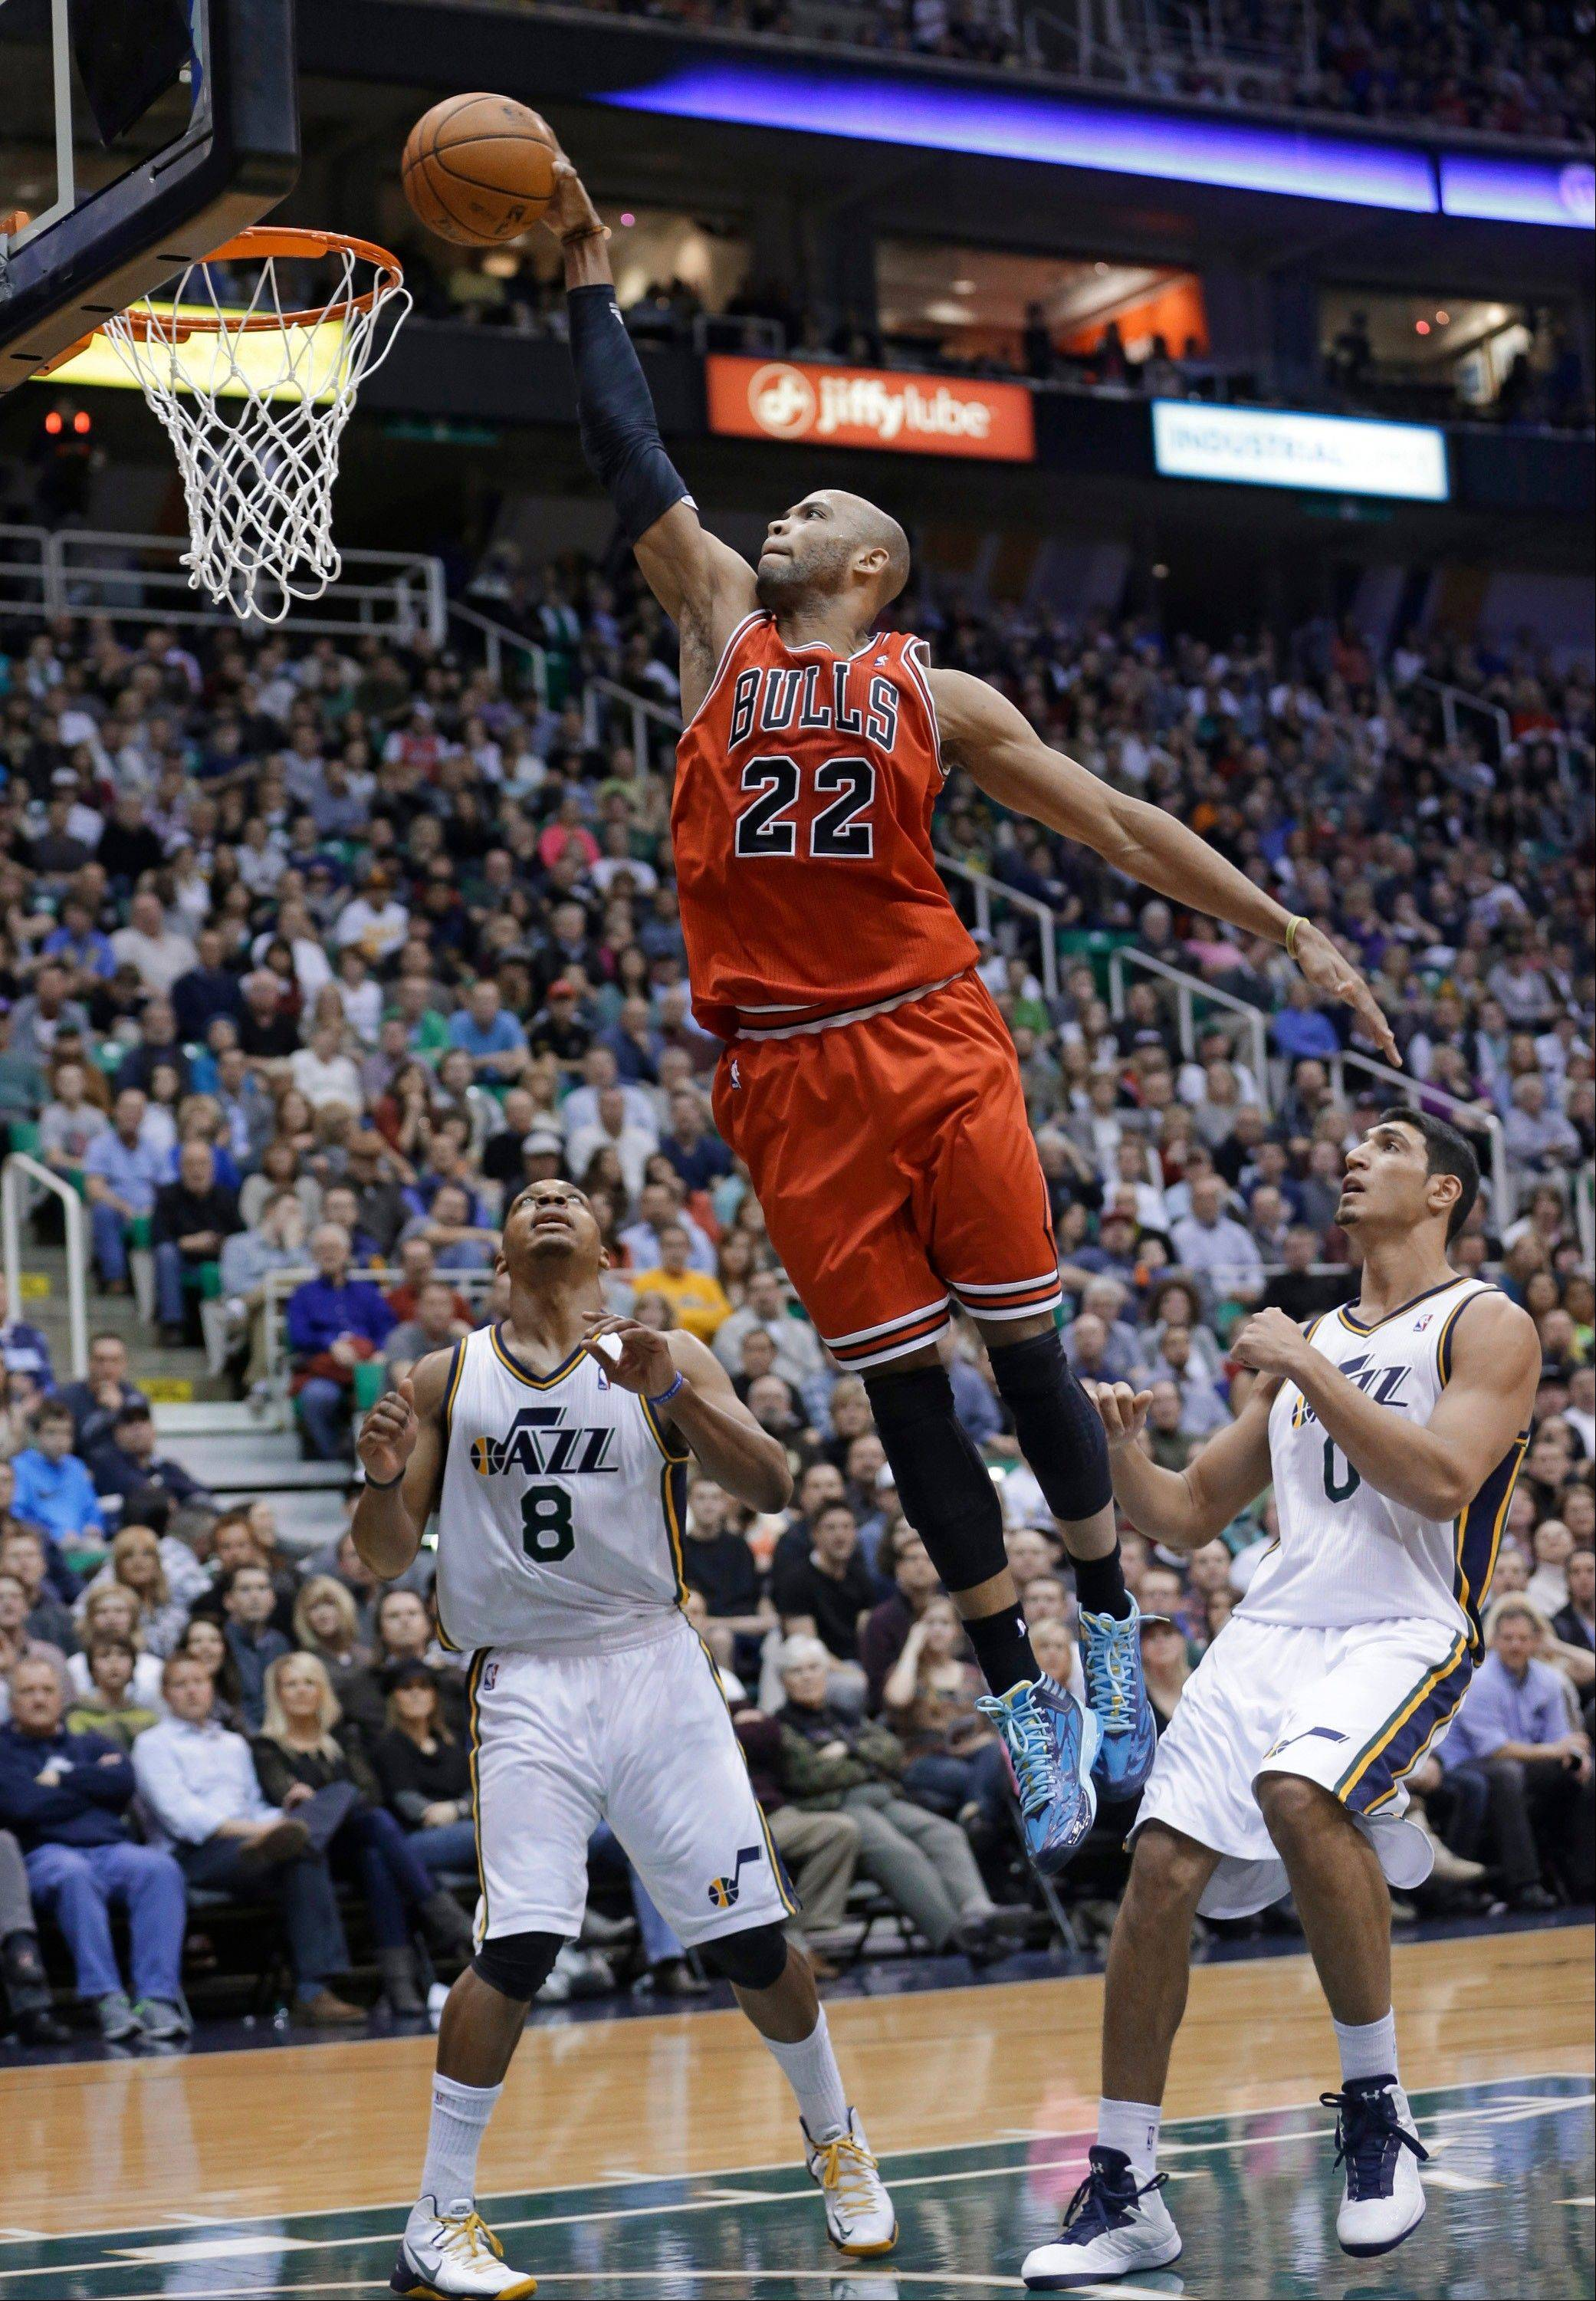 Taj Gibson (22) dunks as Utah's Randy Foye (8) and Enes Kanter (0) watch during the second quarter Friday in Salt Lake City.